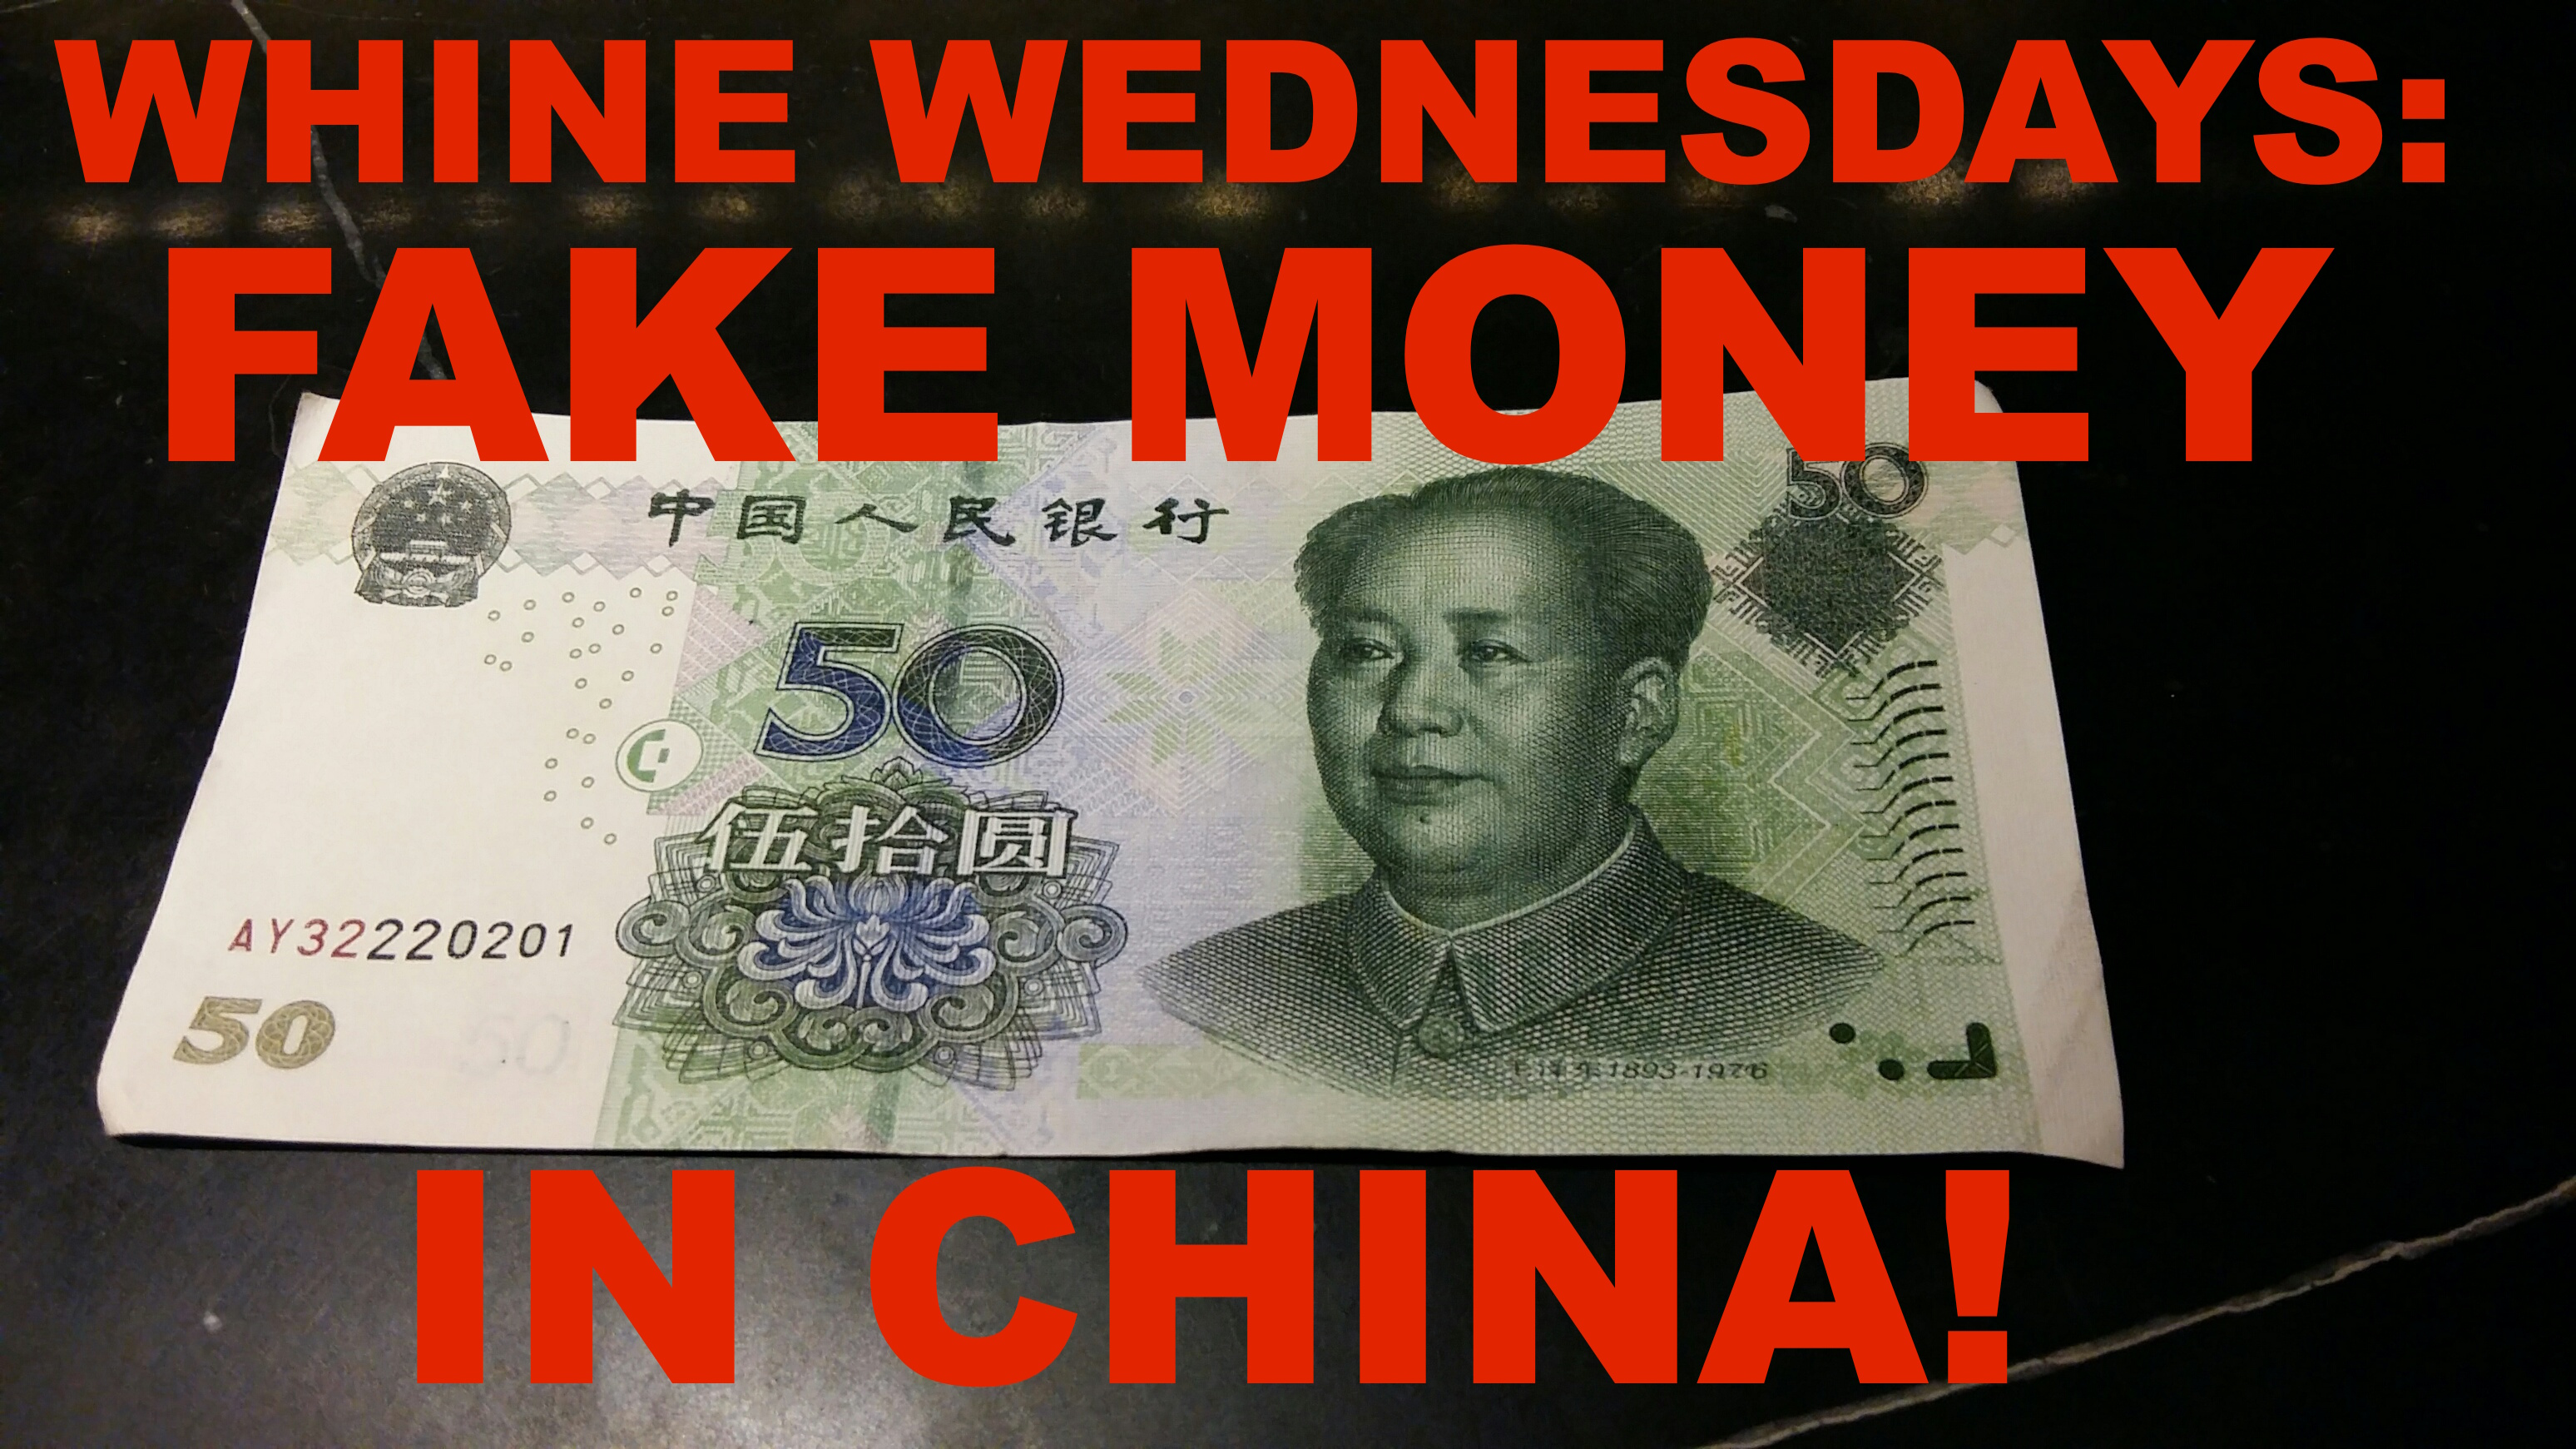 Whine Wednesdays Beware Of Fake Taxis Fake Money In